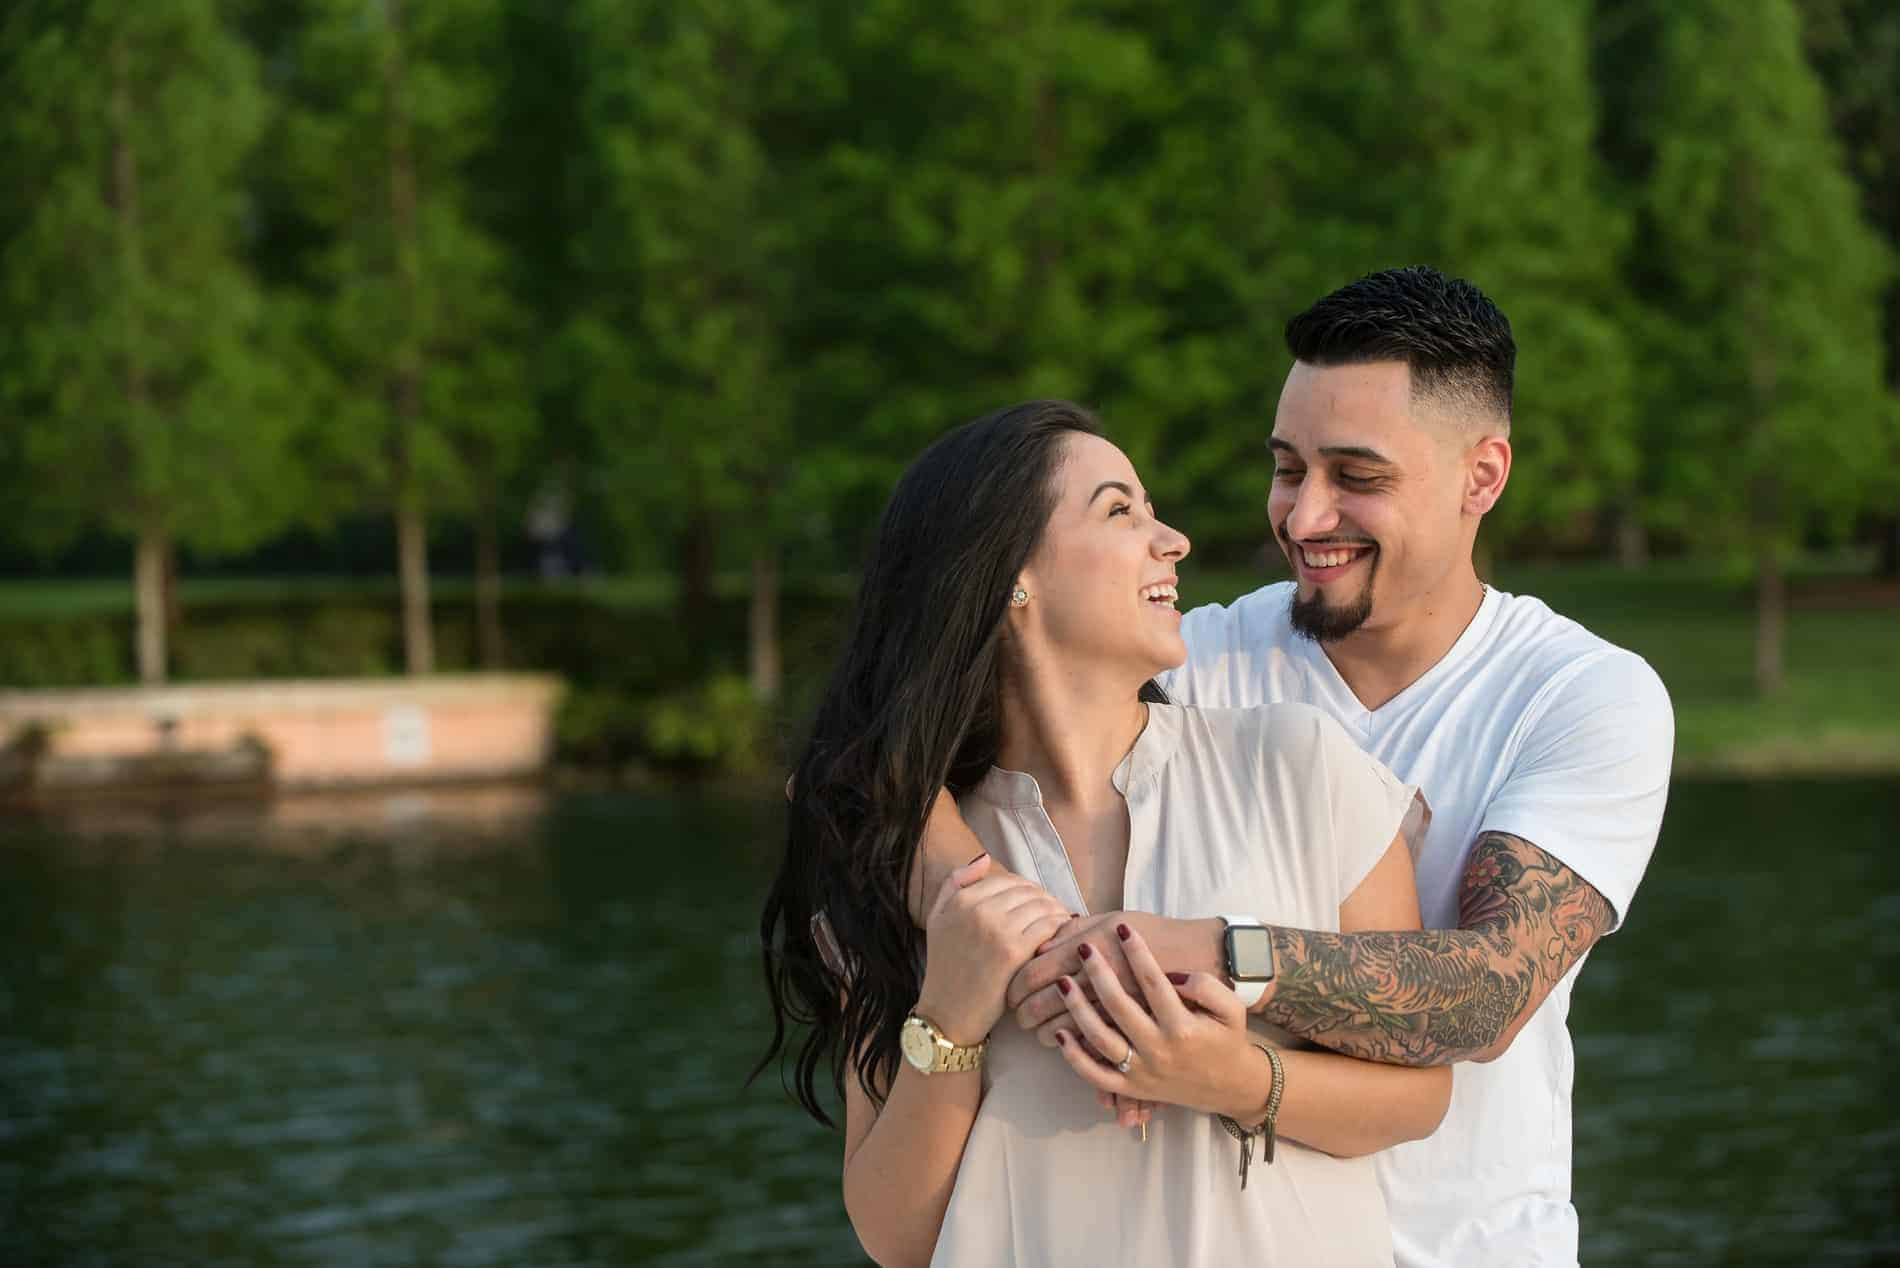 Very Cute Couple during an Engagement Session with their Orlando Wedding Photographers